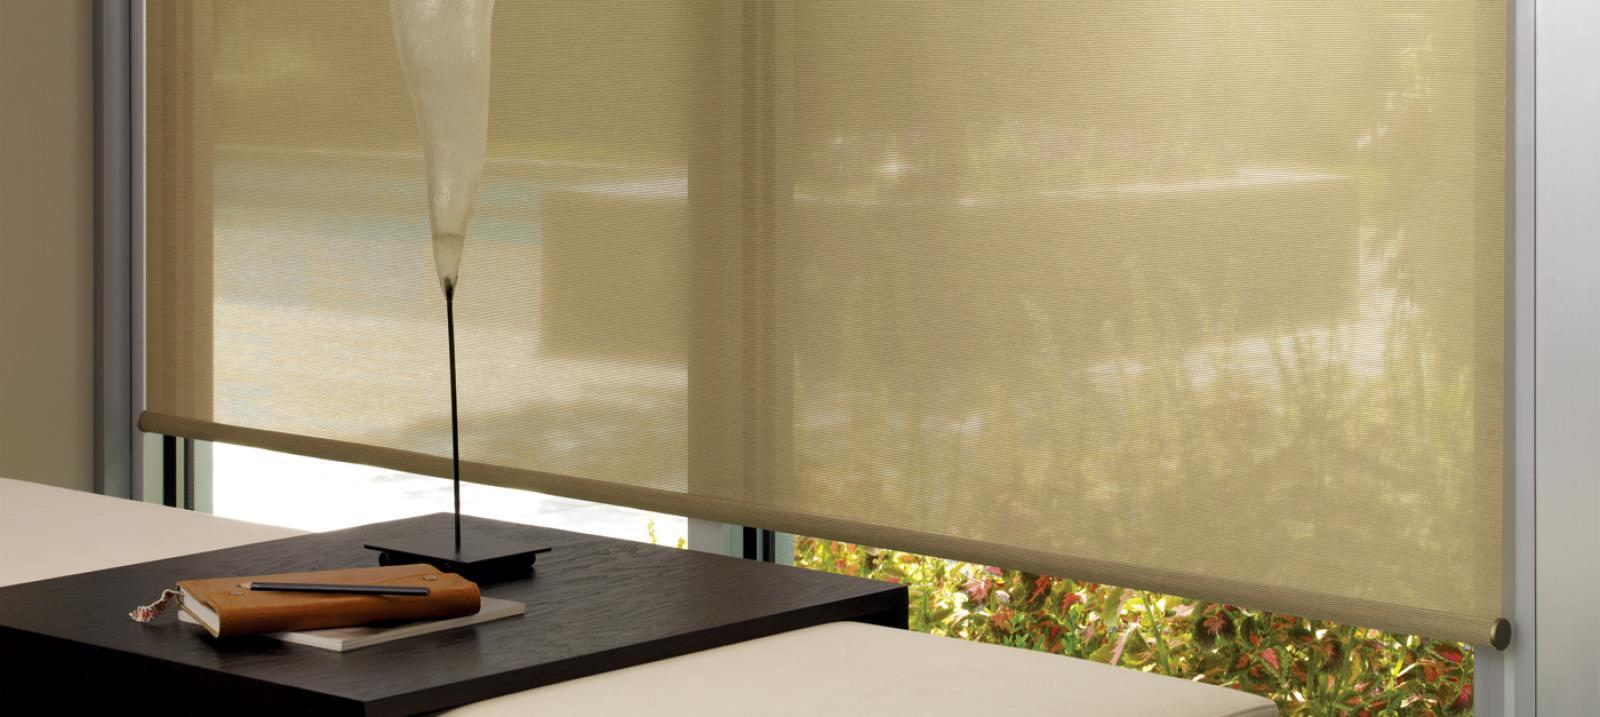 The Alustra Collection of Roller Shades in Café